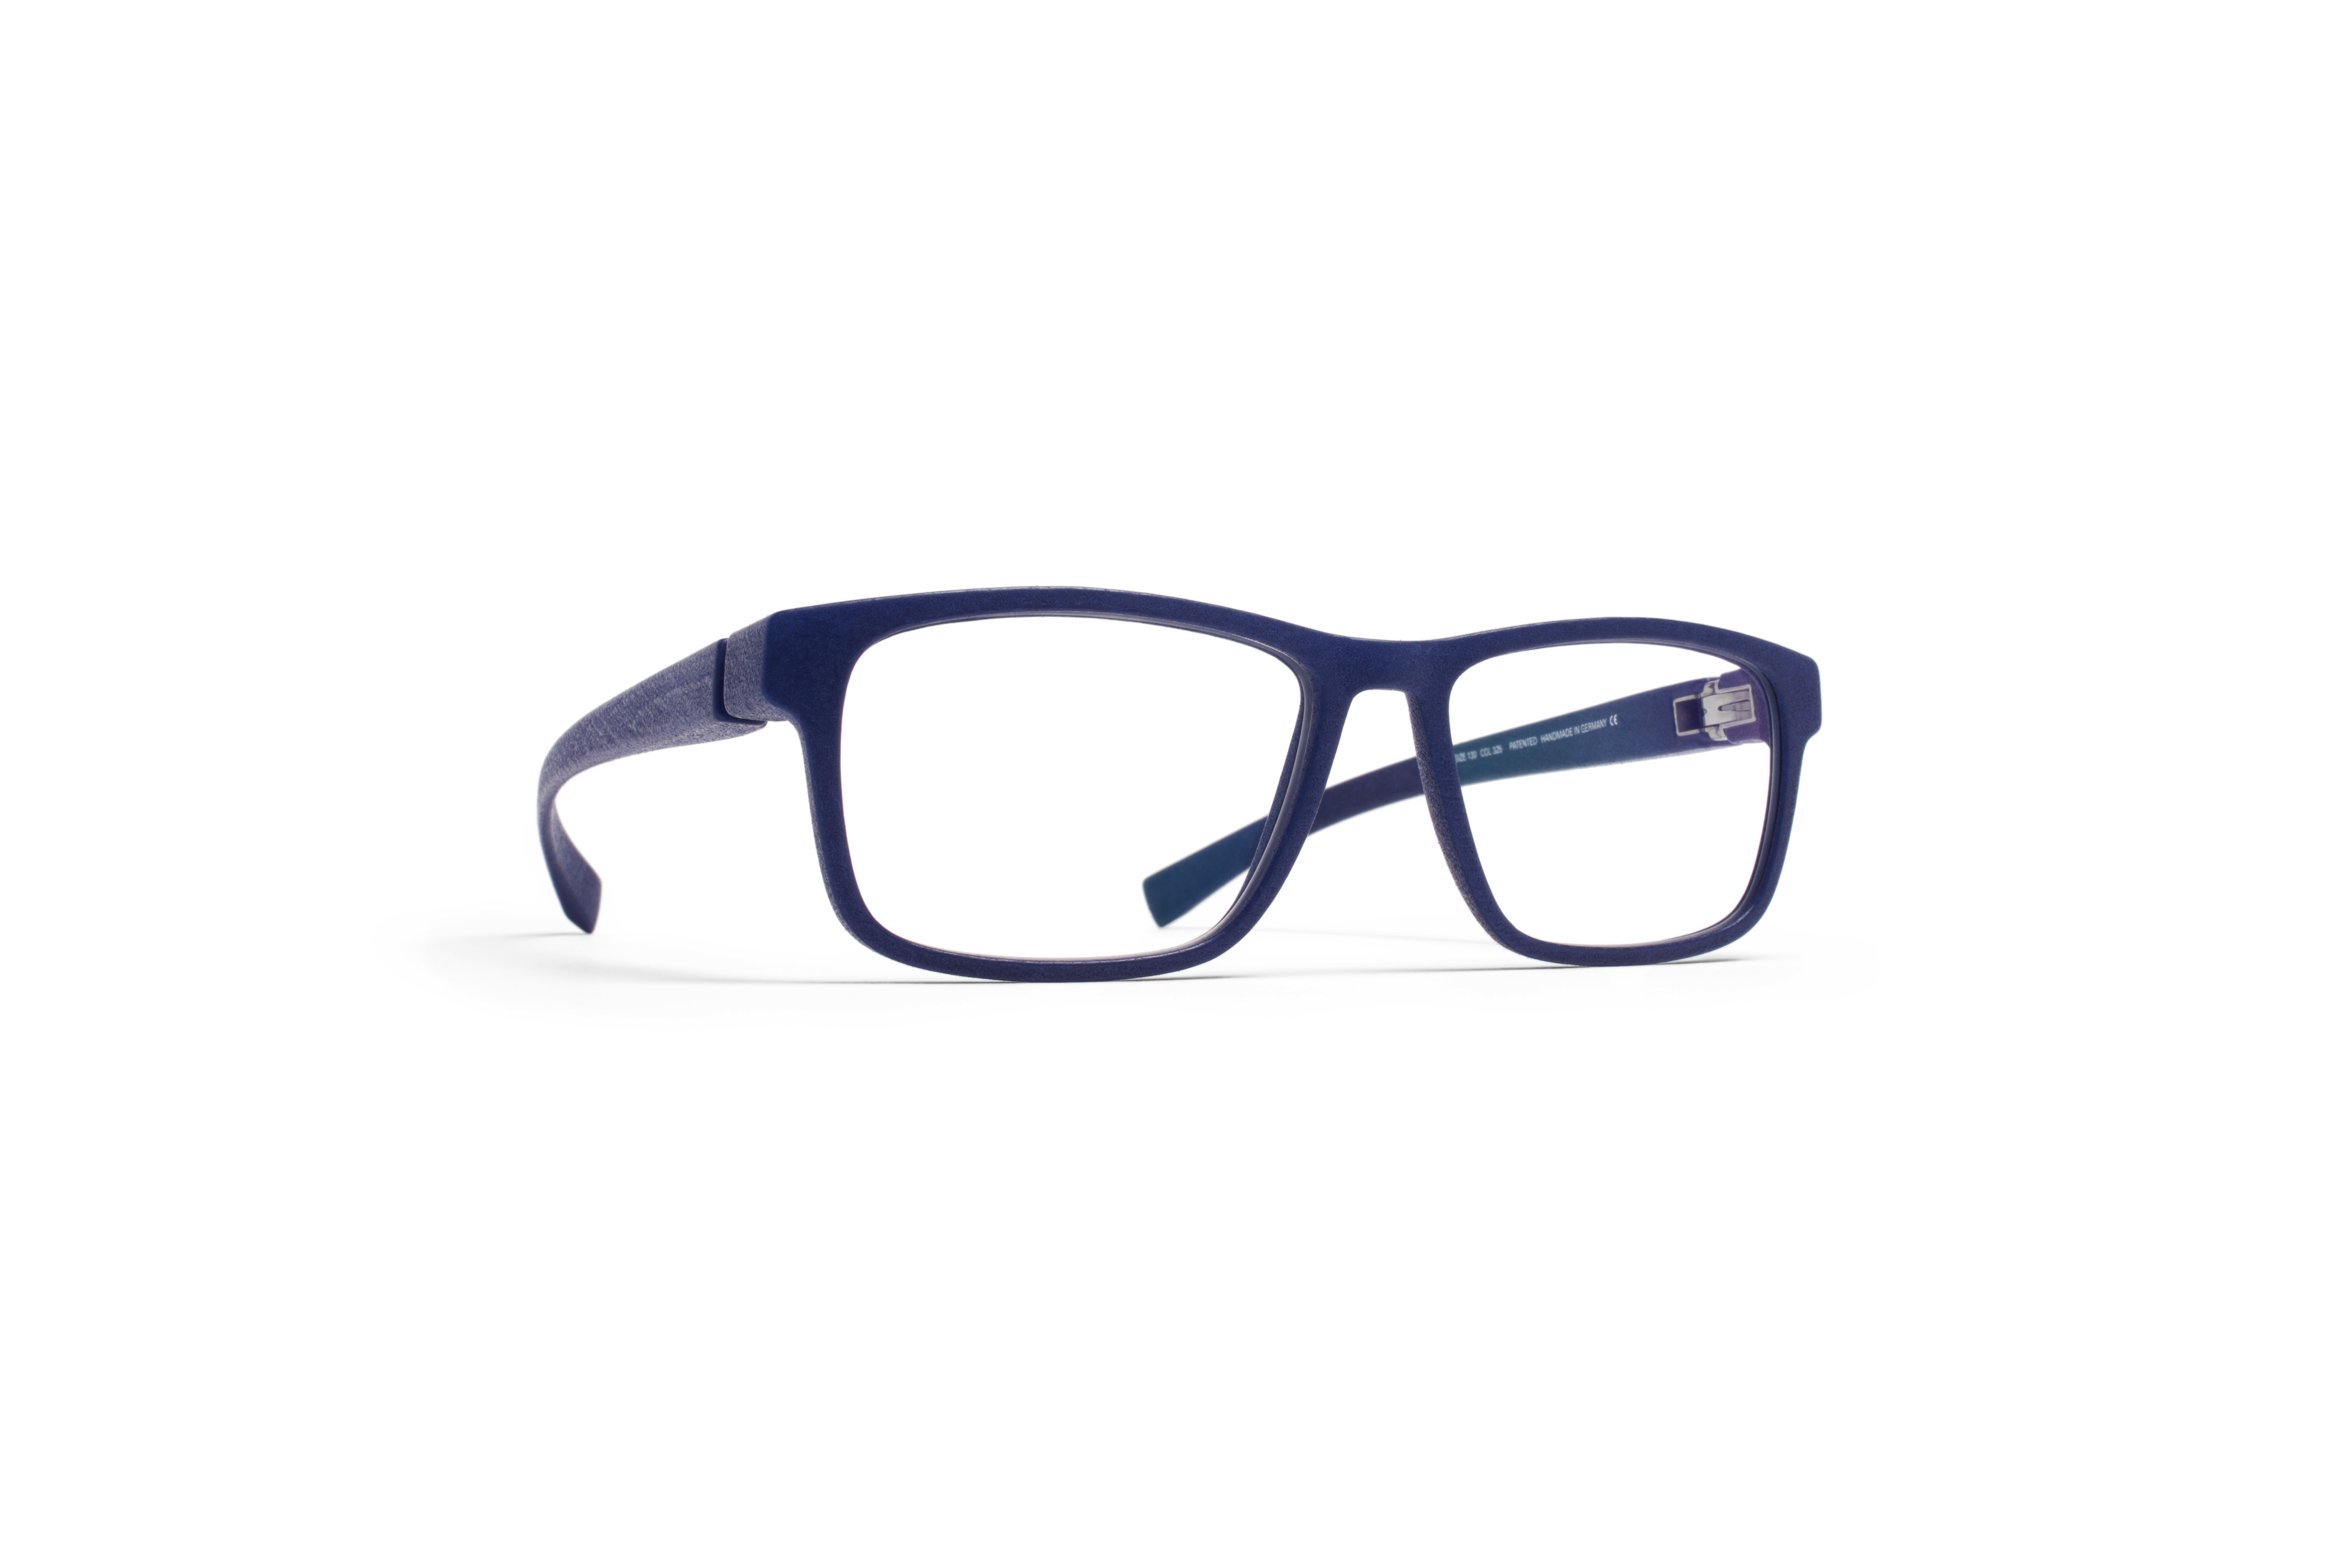 MYKITA Mylon Rx Jupiter Md25 Navy Blue Clear